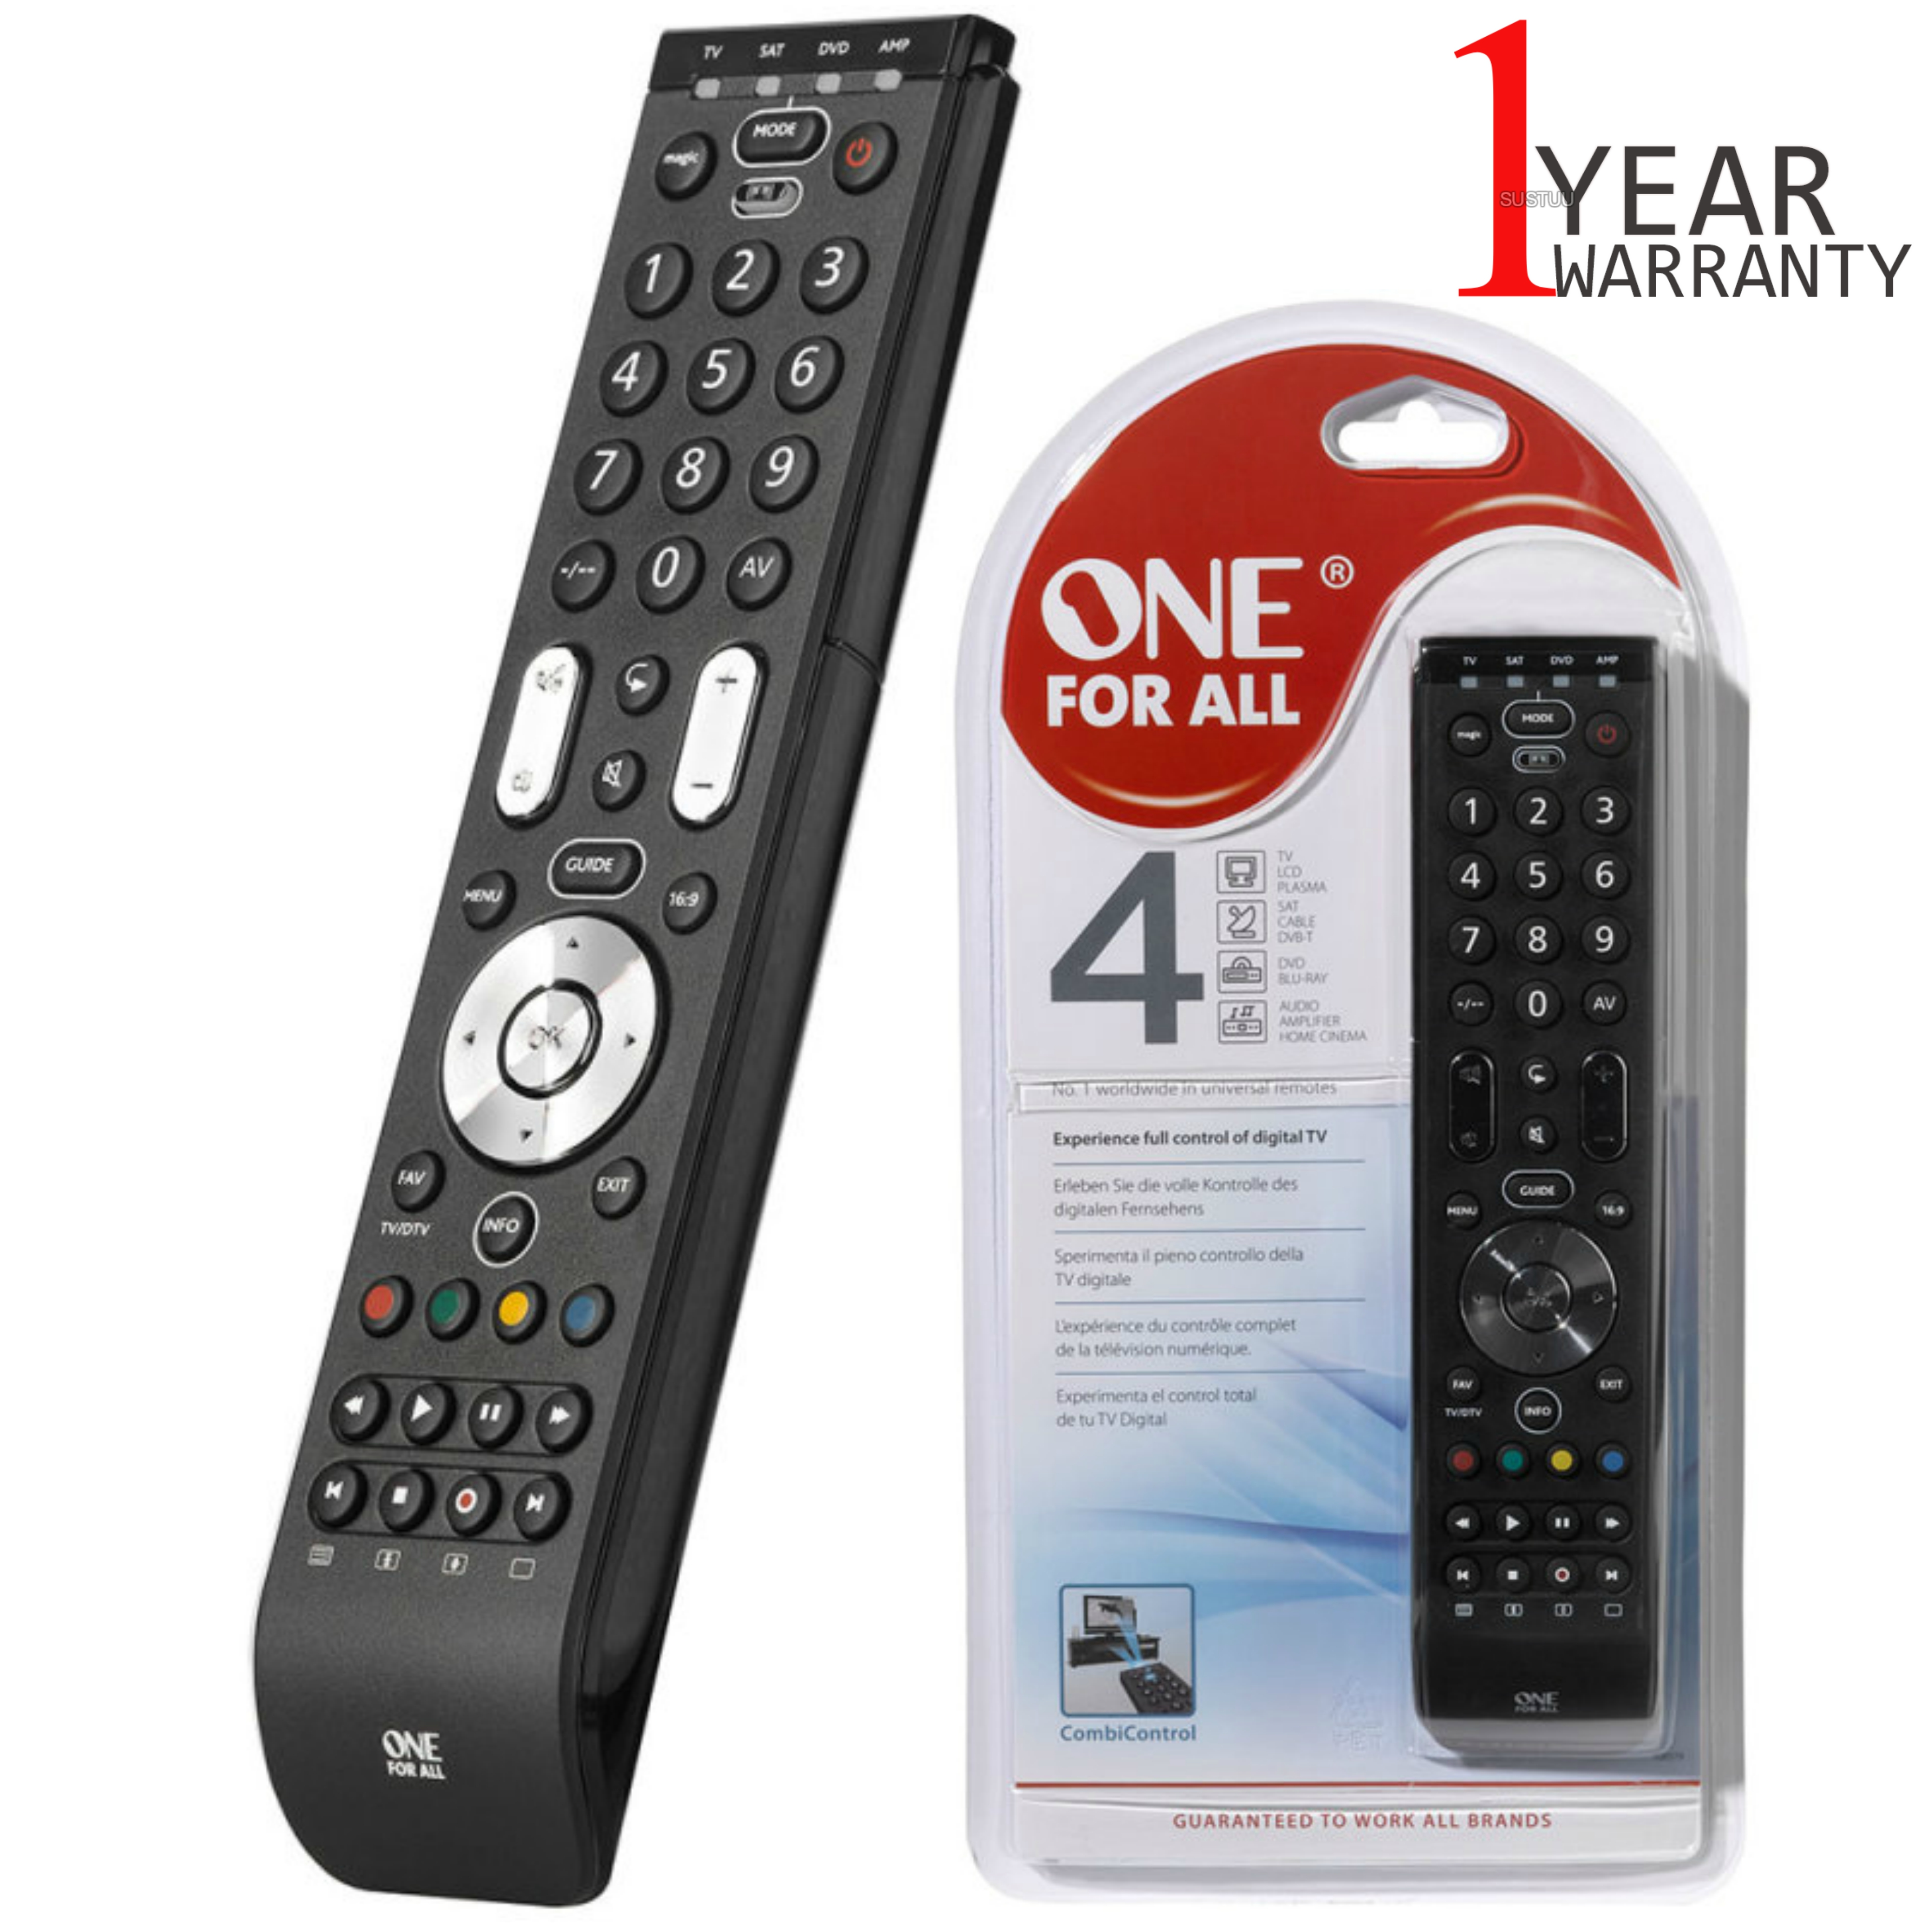 One For All Essence 4 in 1 Universal Remote Control | 3 Steps Setup | Black | URC7140